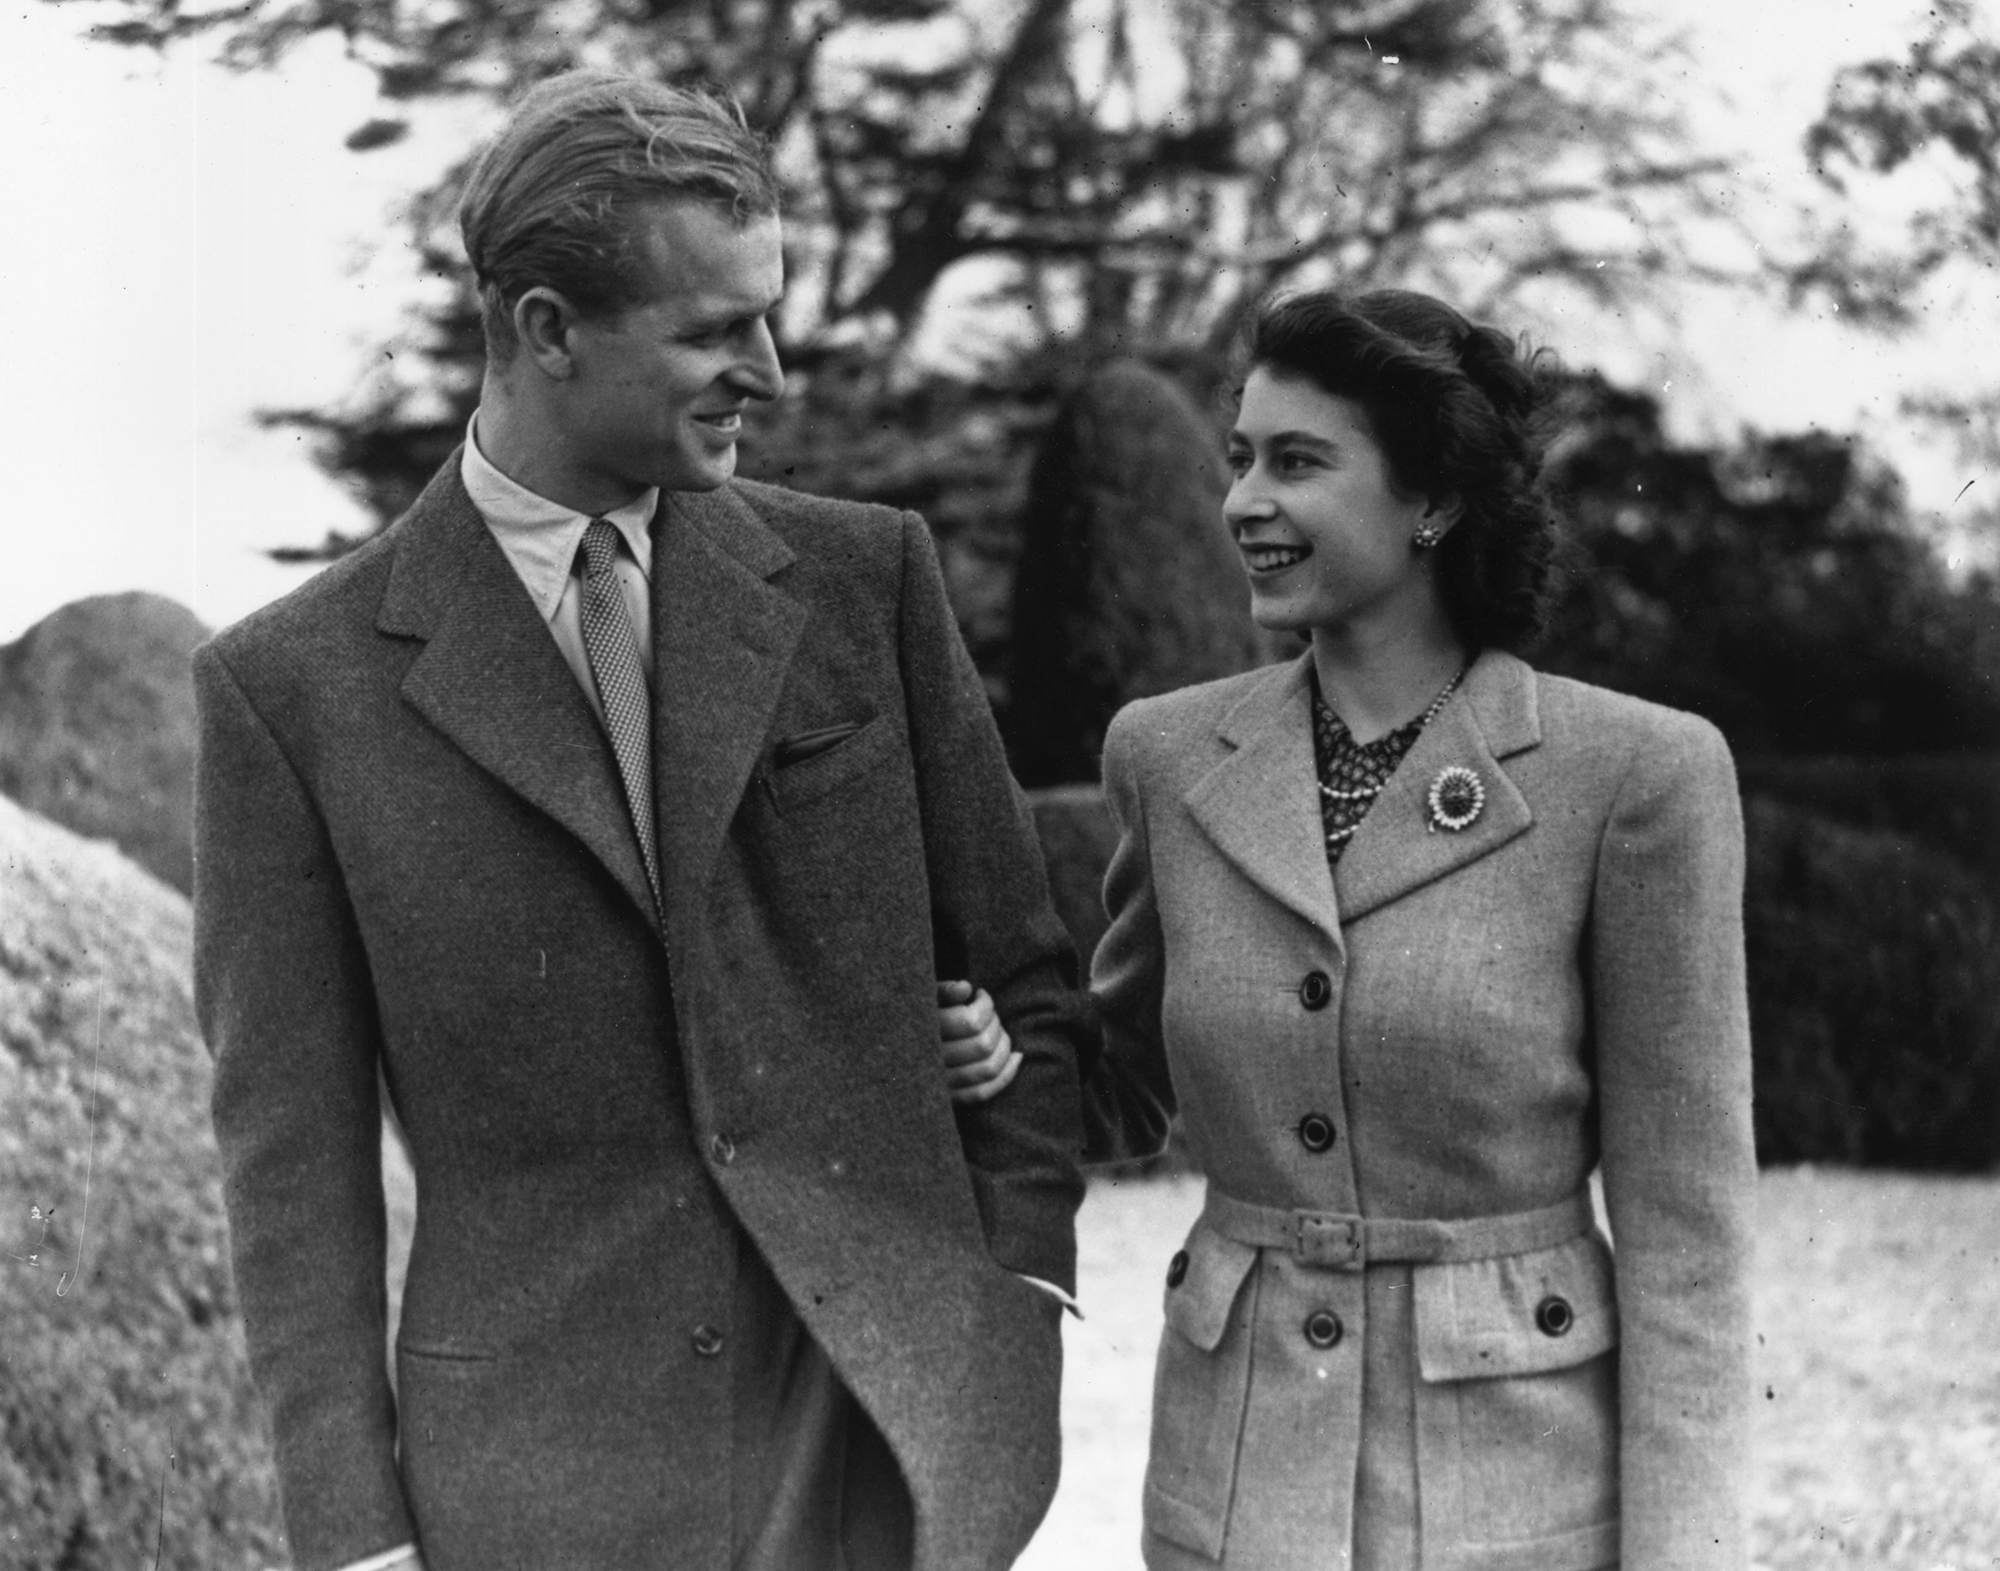 Queen Elizabeth Honeymoon Photo